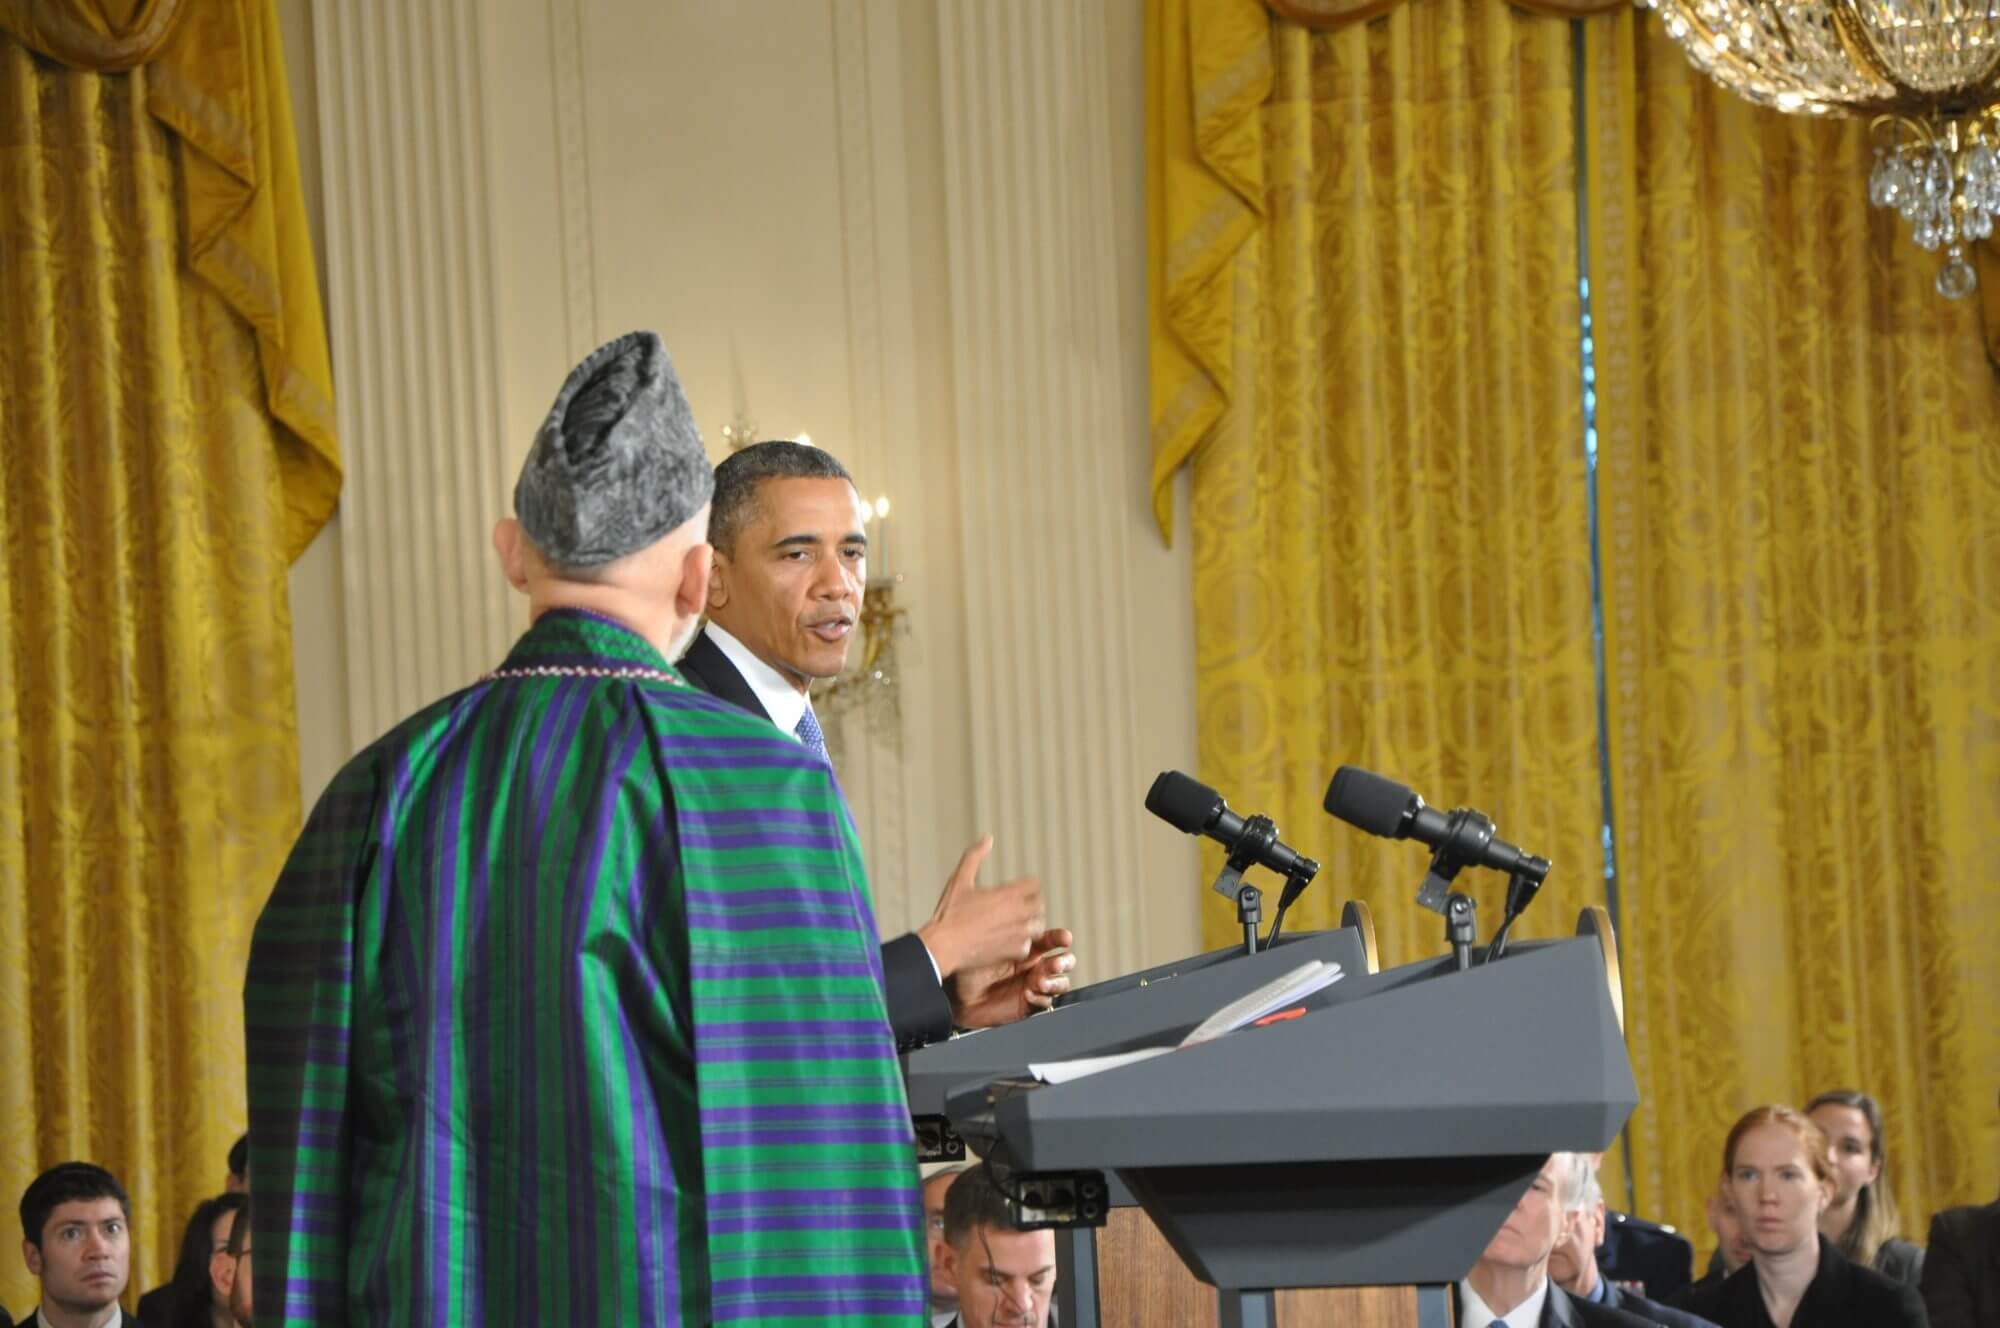 Joint Press Conference with Presidents Obama and Karzai